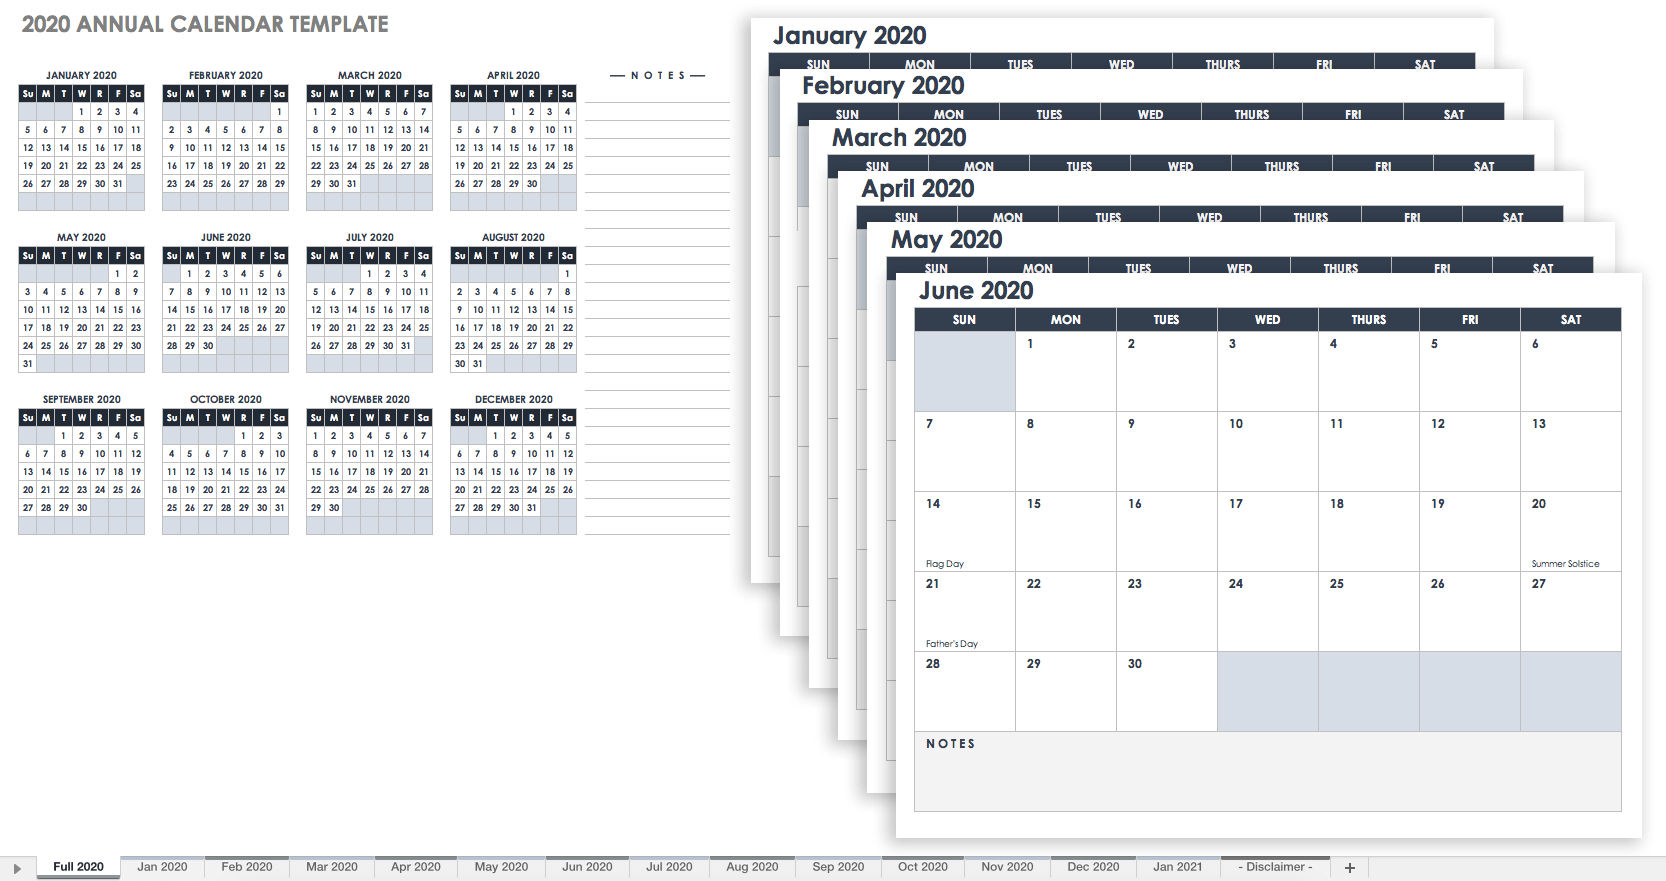 Free, Printable Excel Calendar Templates For 2019 & On | Smartsheet with regard to Fill In Calendar Templates